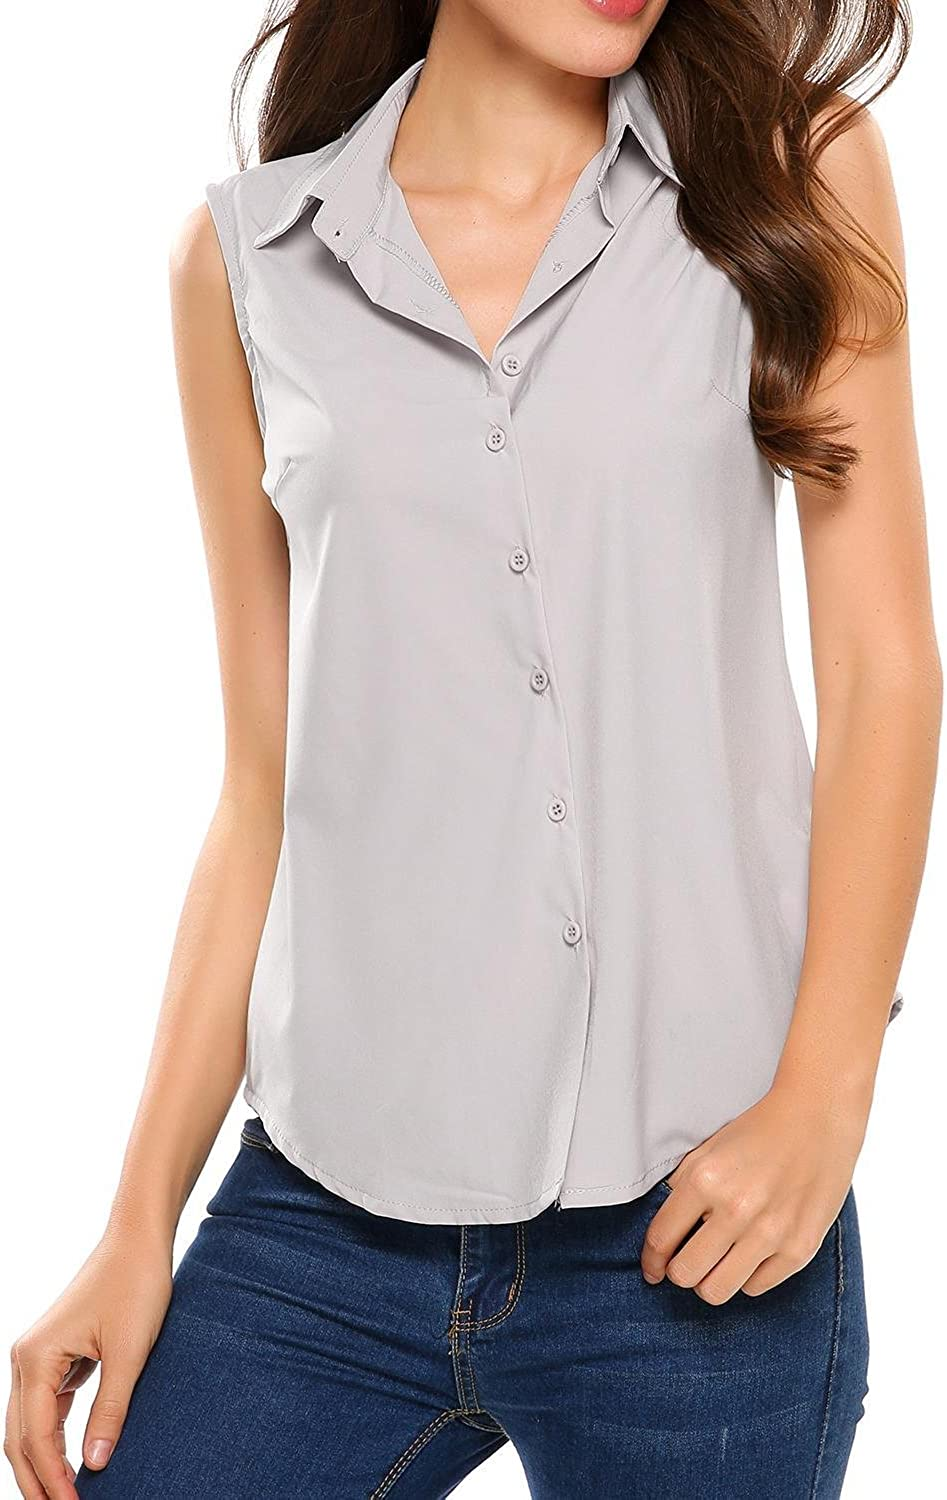 XL, Gray Blouses For Women Fashion 2018 Womens Summer Tops Solid Button Short Sleeve T-Shirt